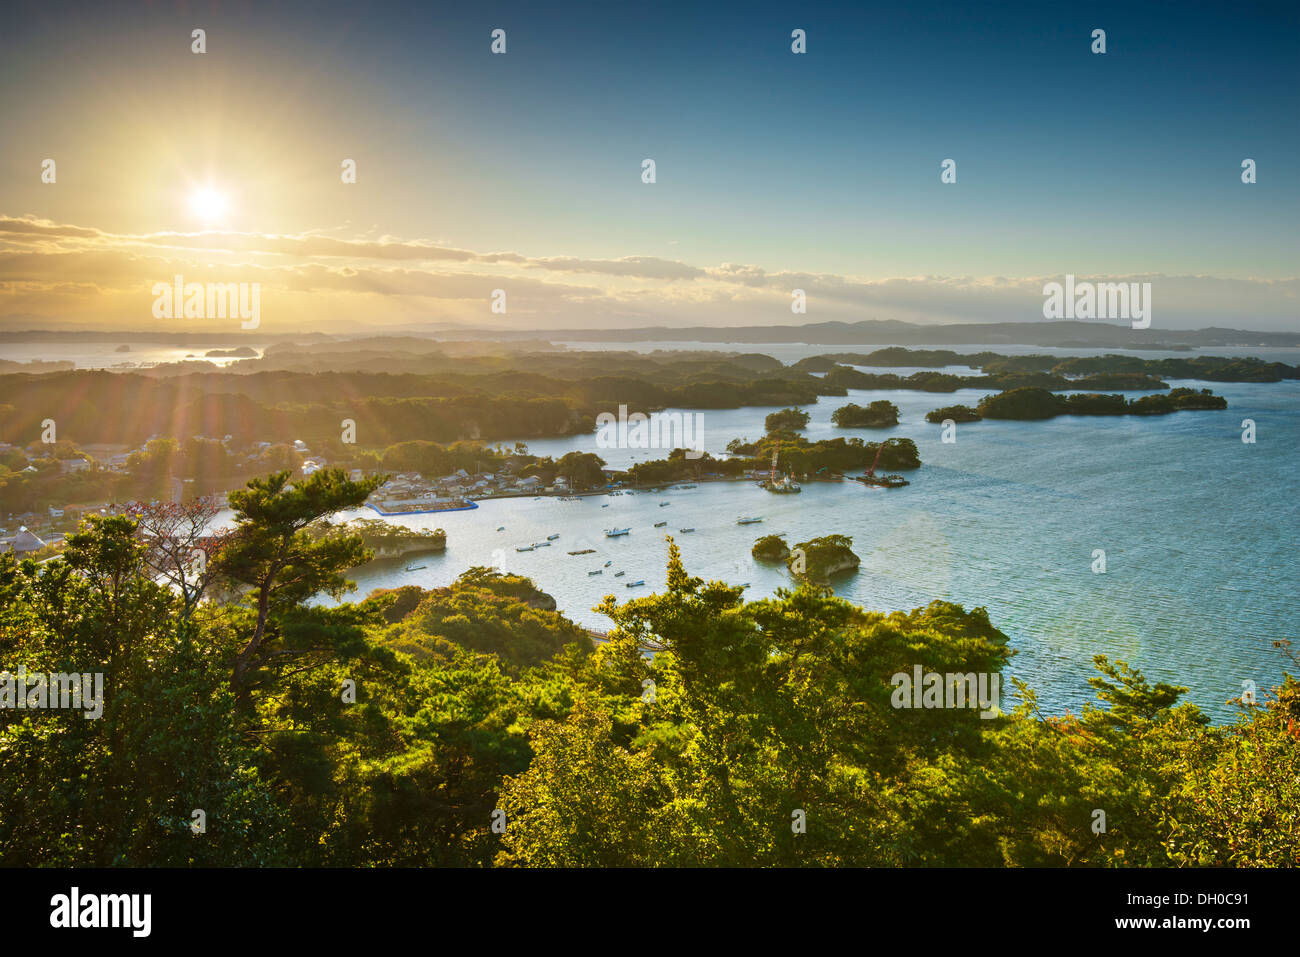 Coast of Matsushima, Japan. - Stock Image